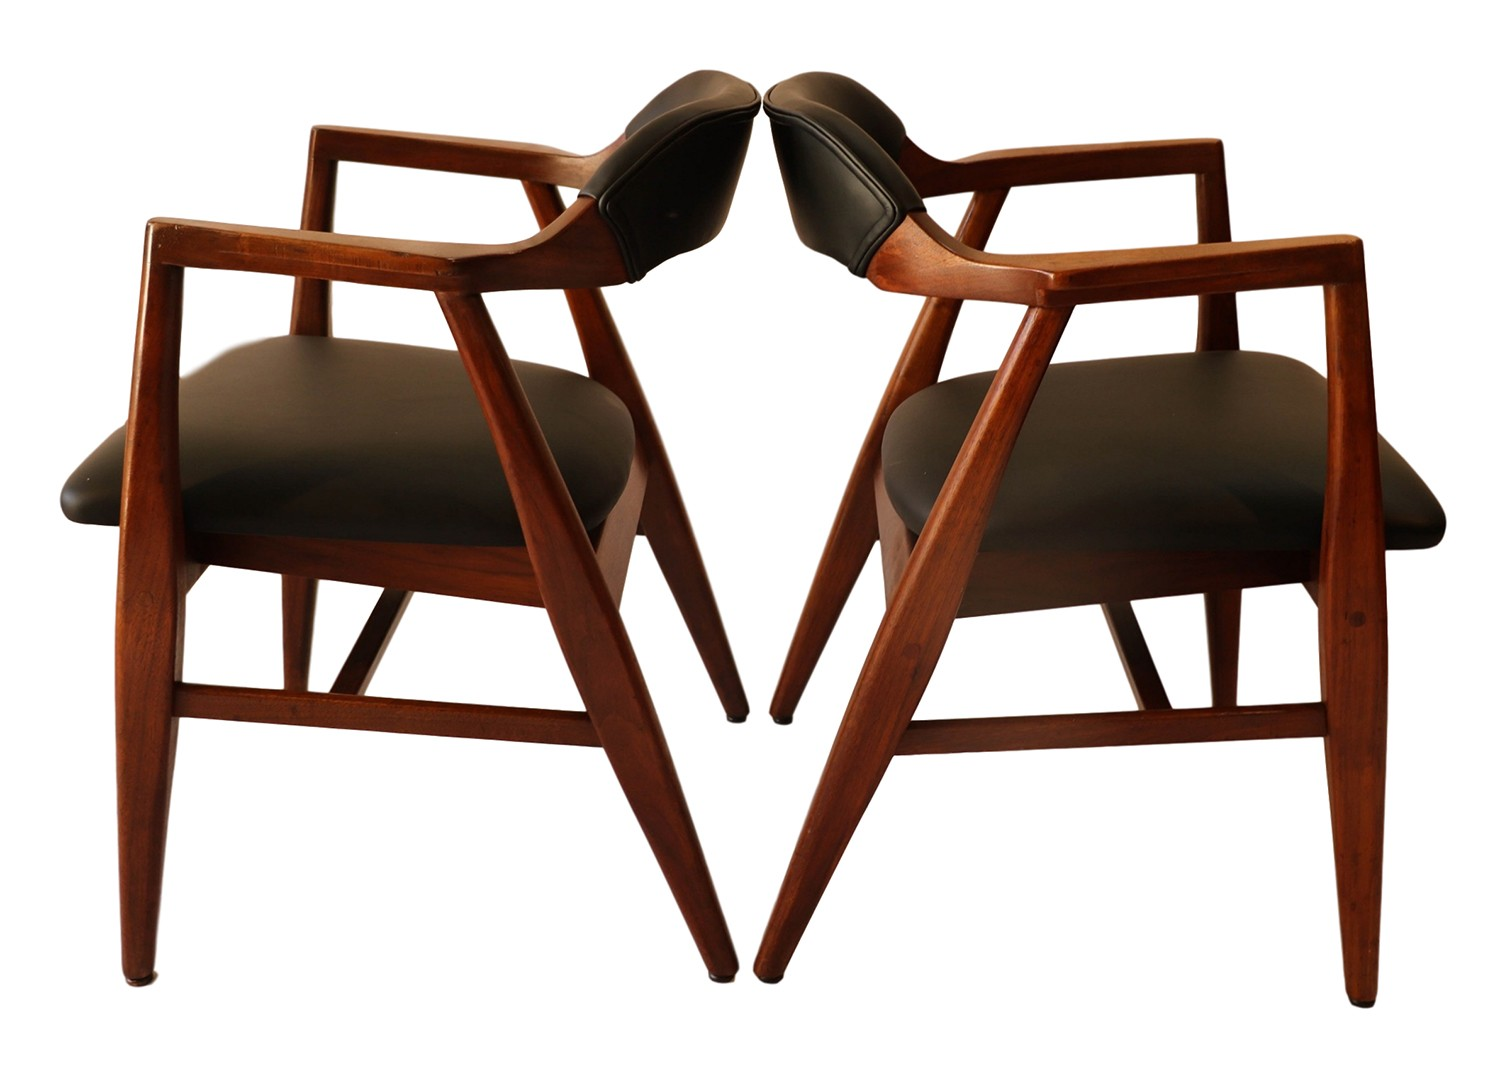 Midcentury Chairs Pair Mid Century Modern Leather Side Chairs